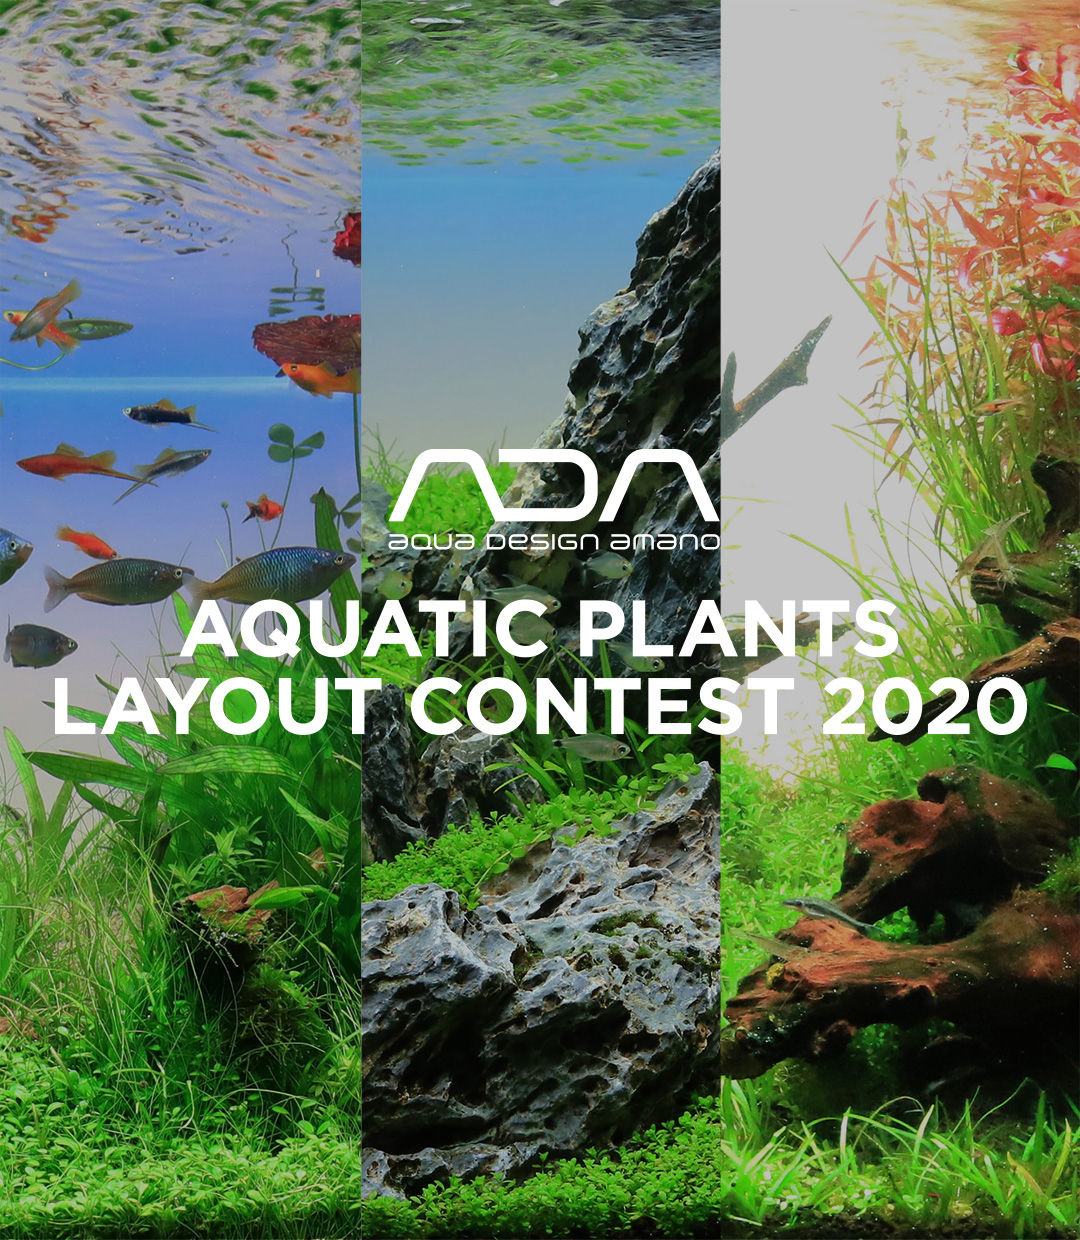 ADA AQUATIC PLANTS LAYOUT CONTEST 2020